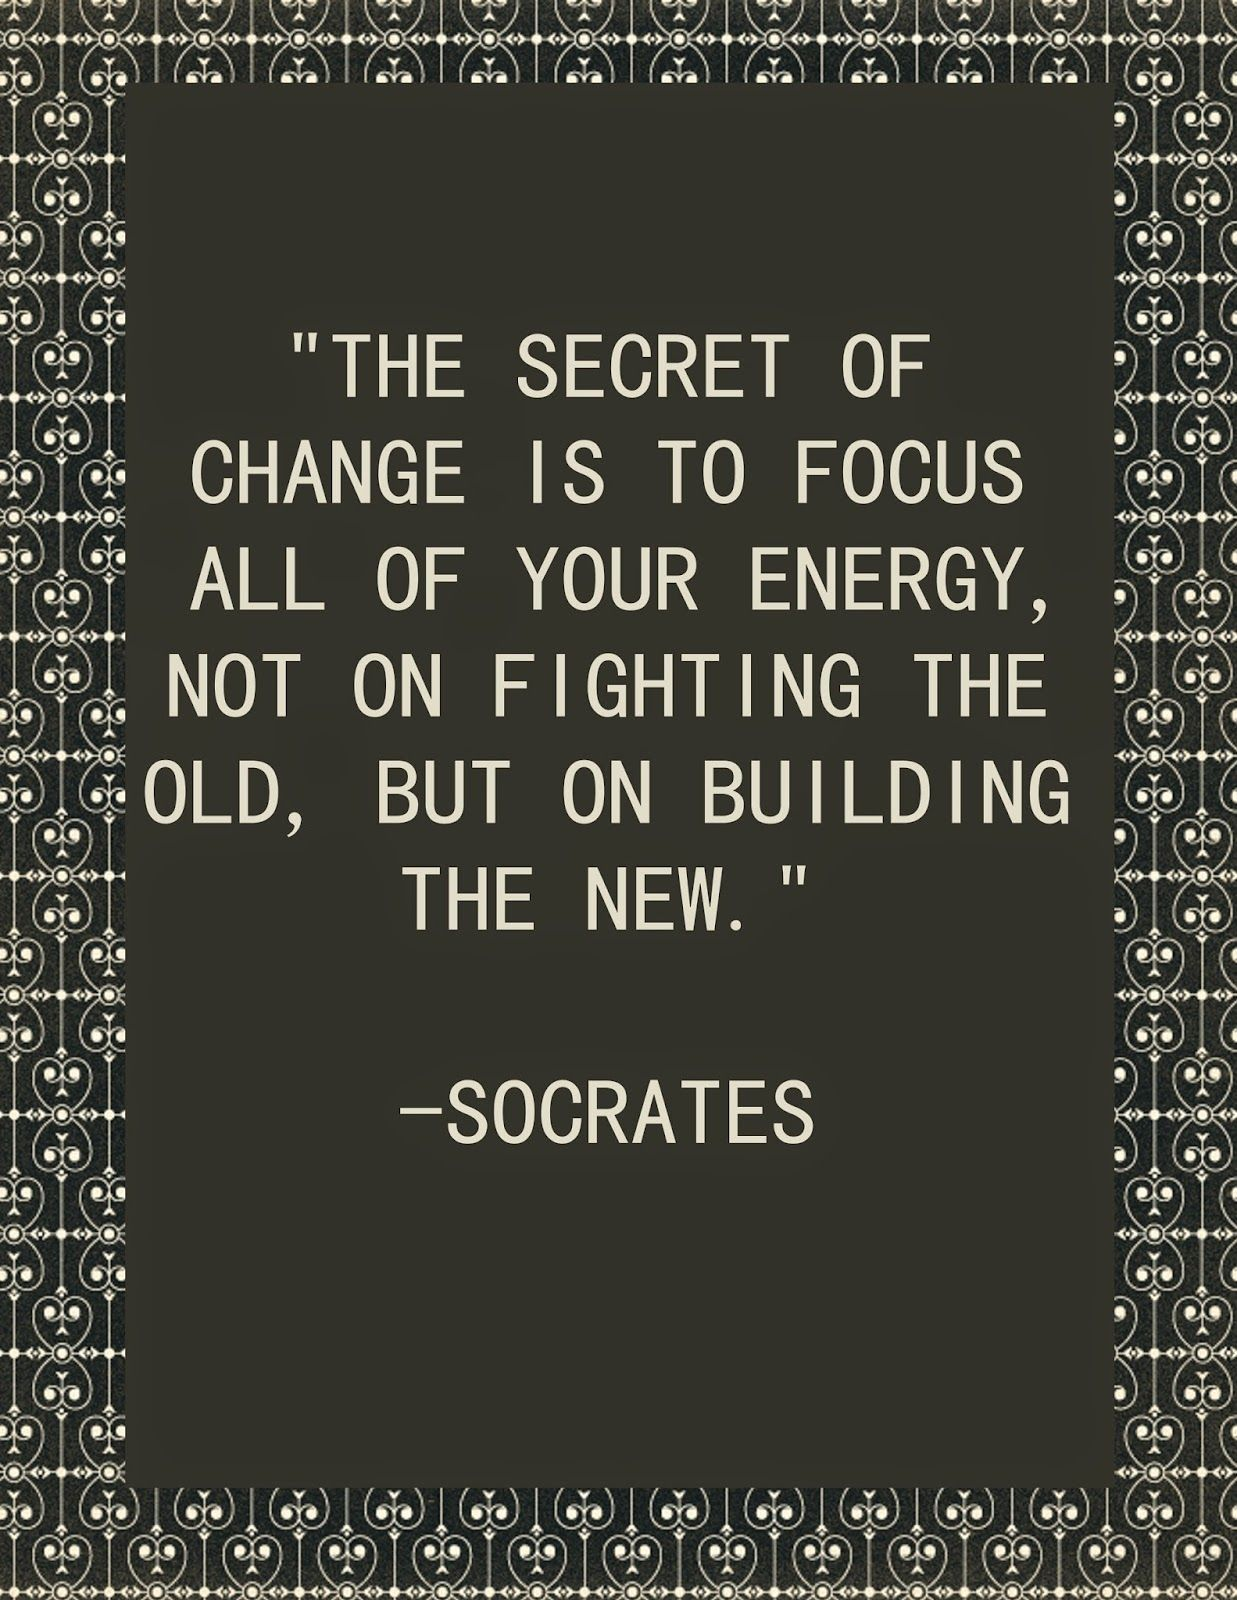 Energy and Work Quote - March 2015